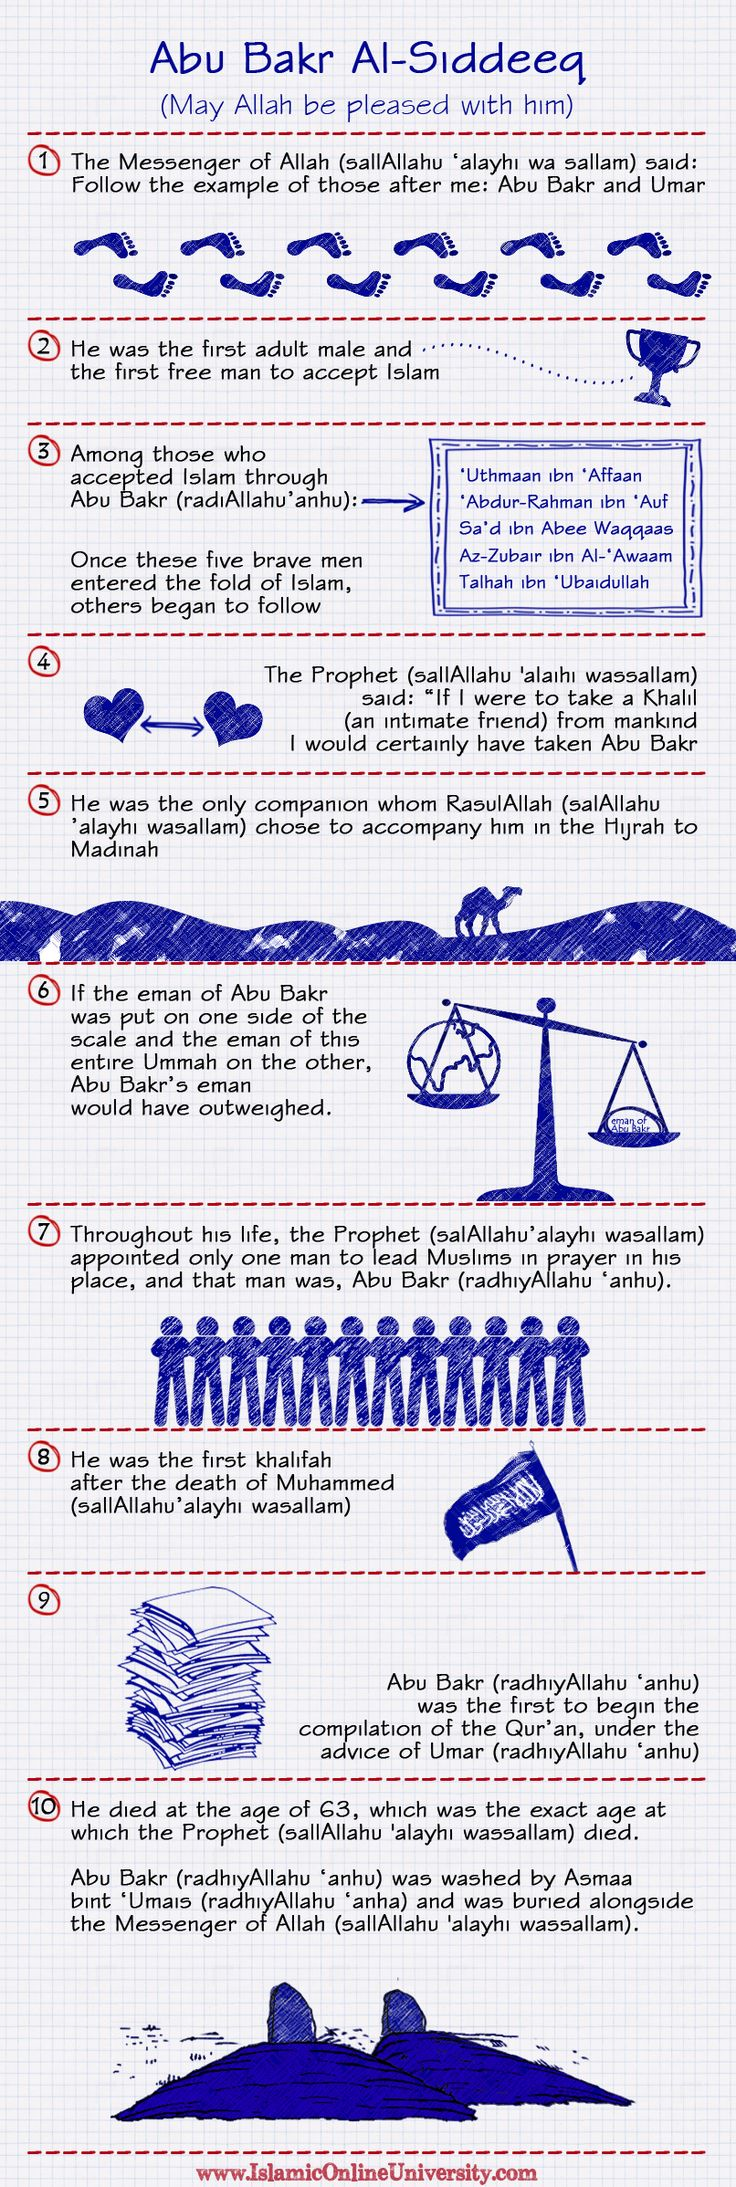 Islamic Online University Blog | The Best Generation: Abu Bakr As-Siddeeq (may Allah be pleased with him) | http://blog.islamiconlineuniversity.com